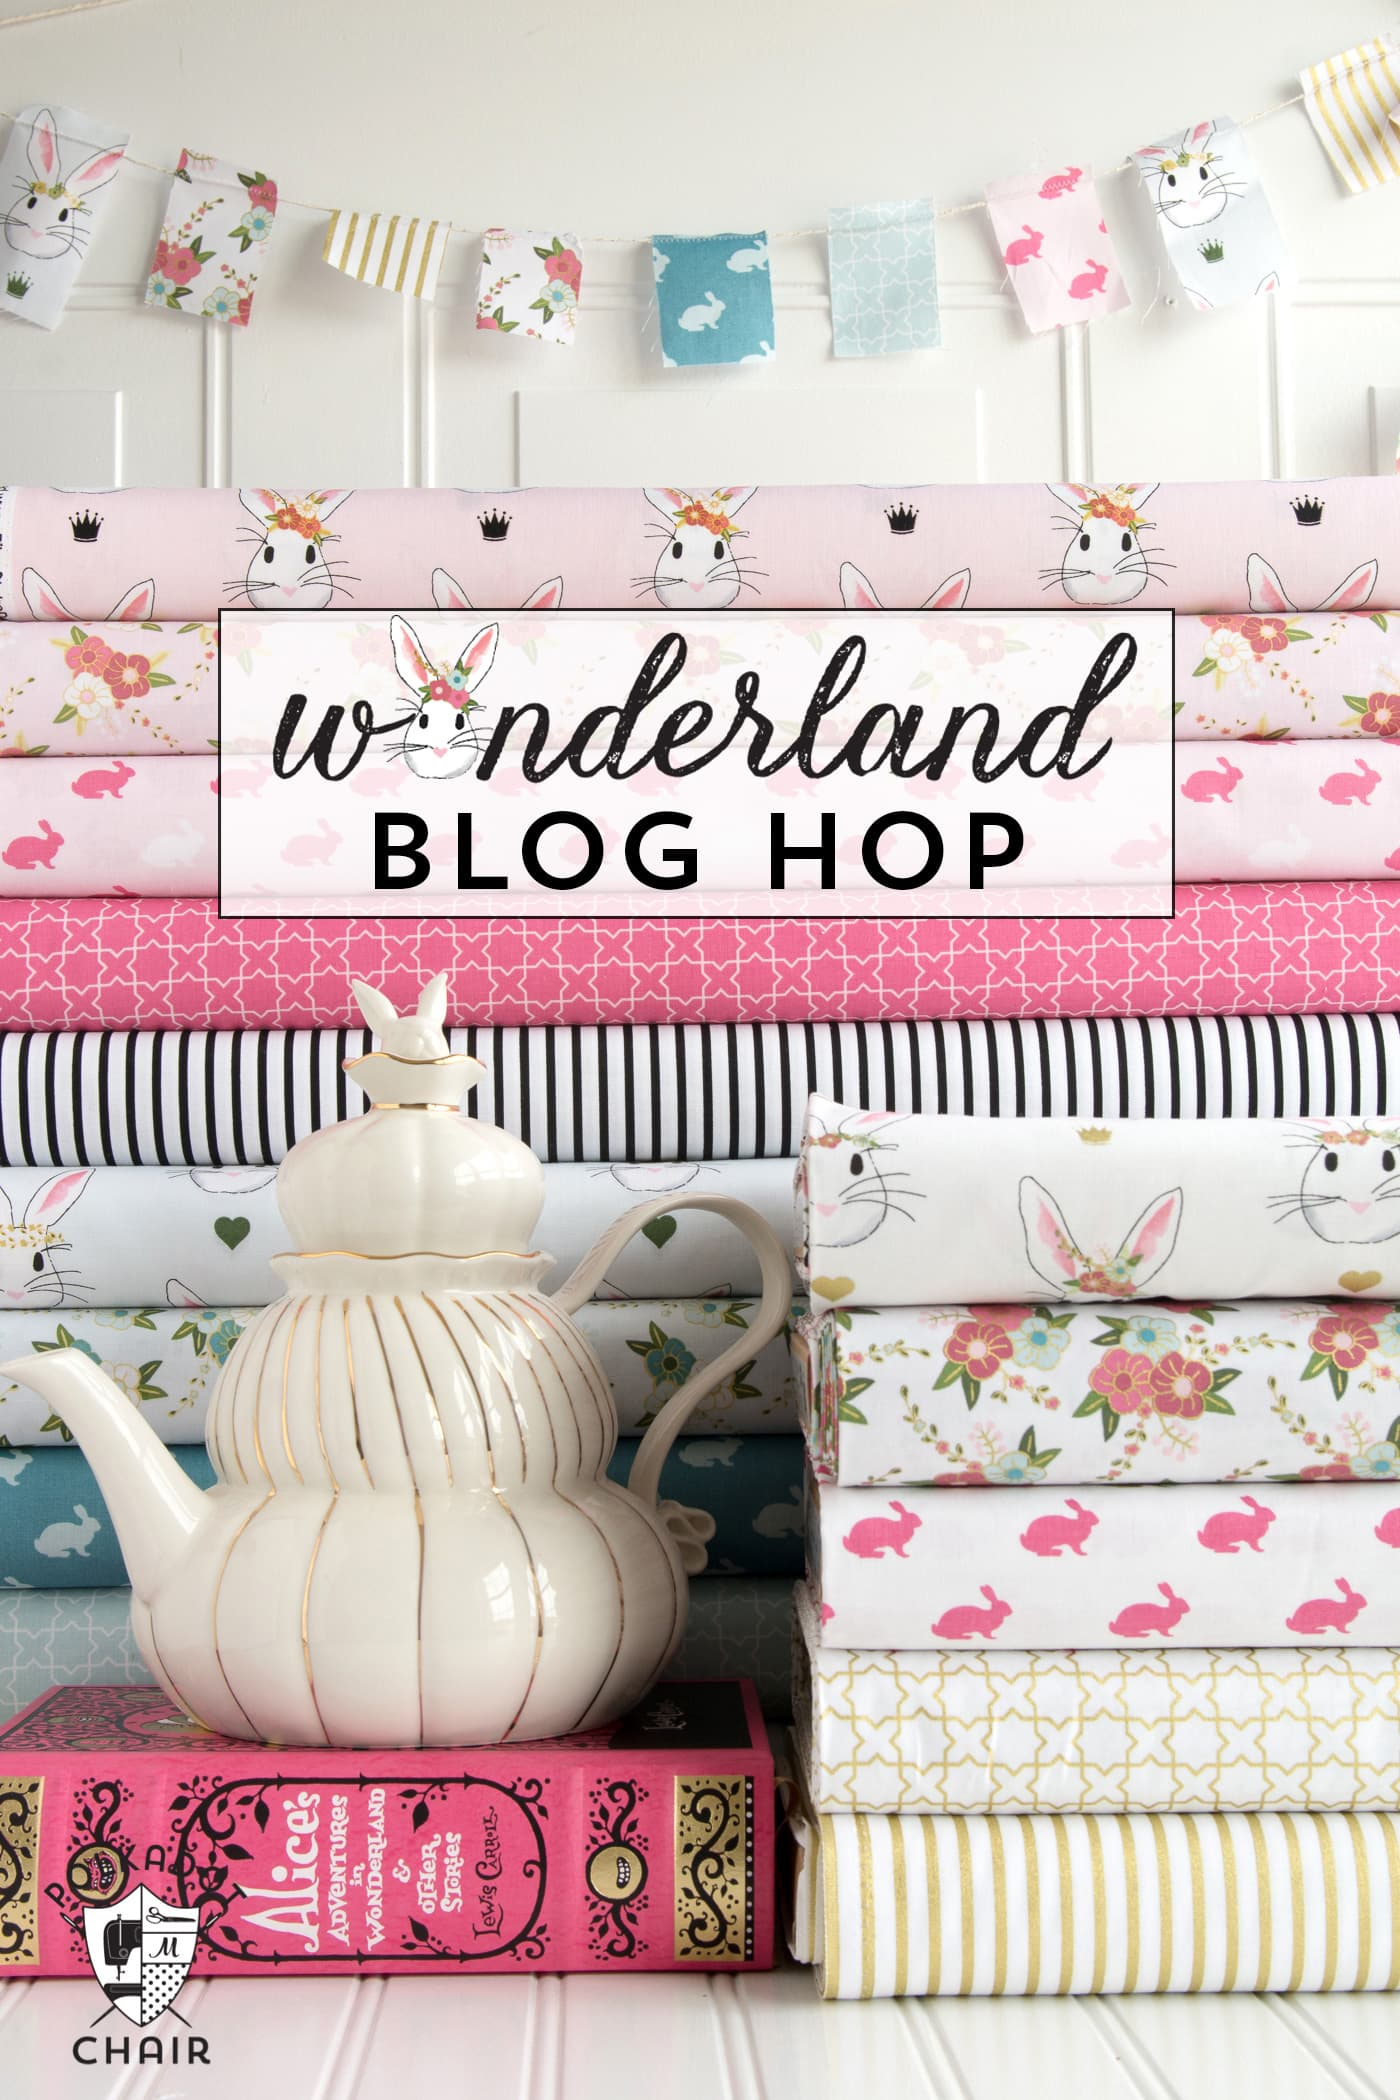 A blog tour full of great ideas using Wonderland Fabric. Sewing patterns, projects and craft ideas for Spring and Easter!